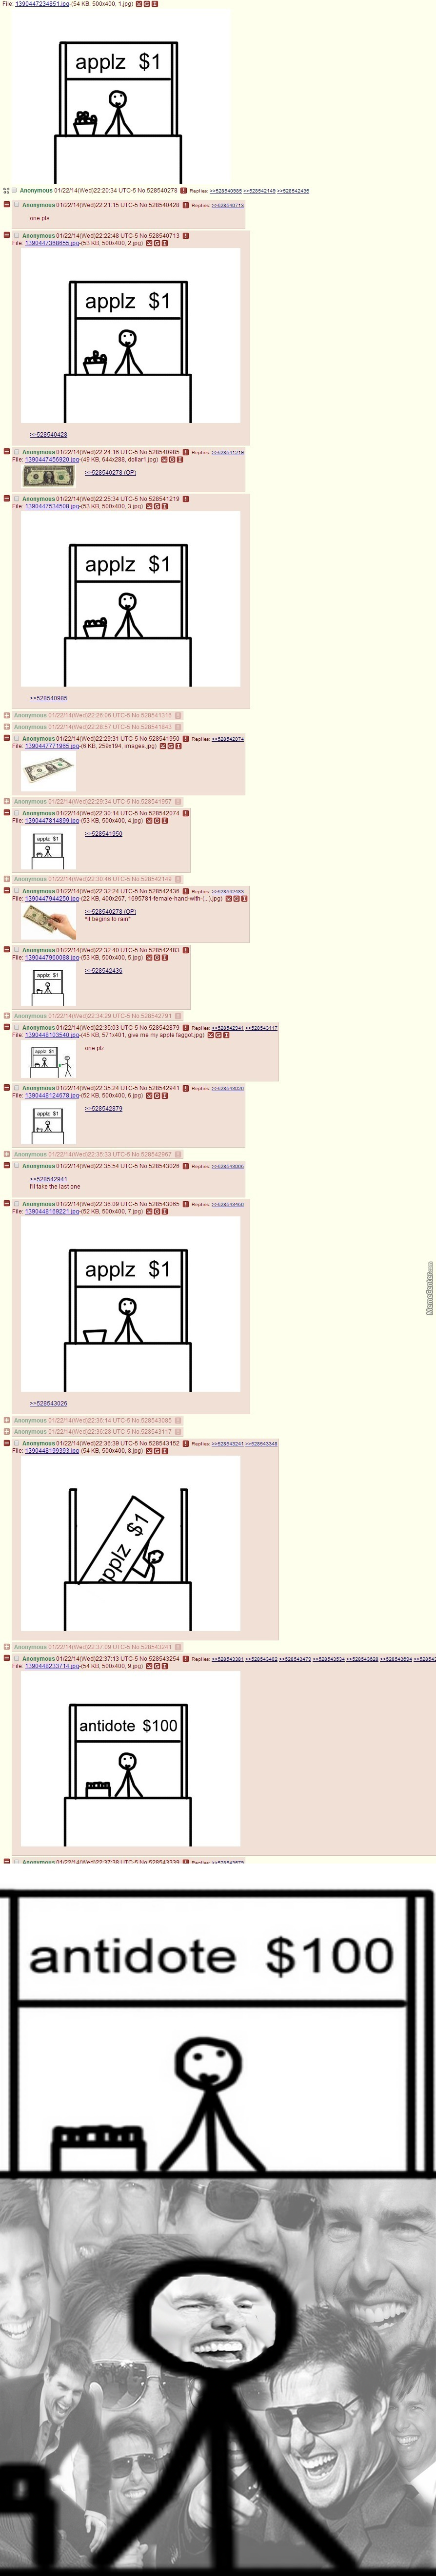 4Chan Memes  Best Collection of Funny 4Chan Pictures